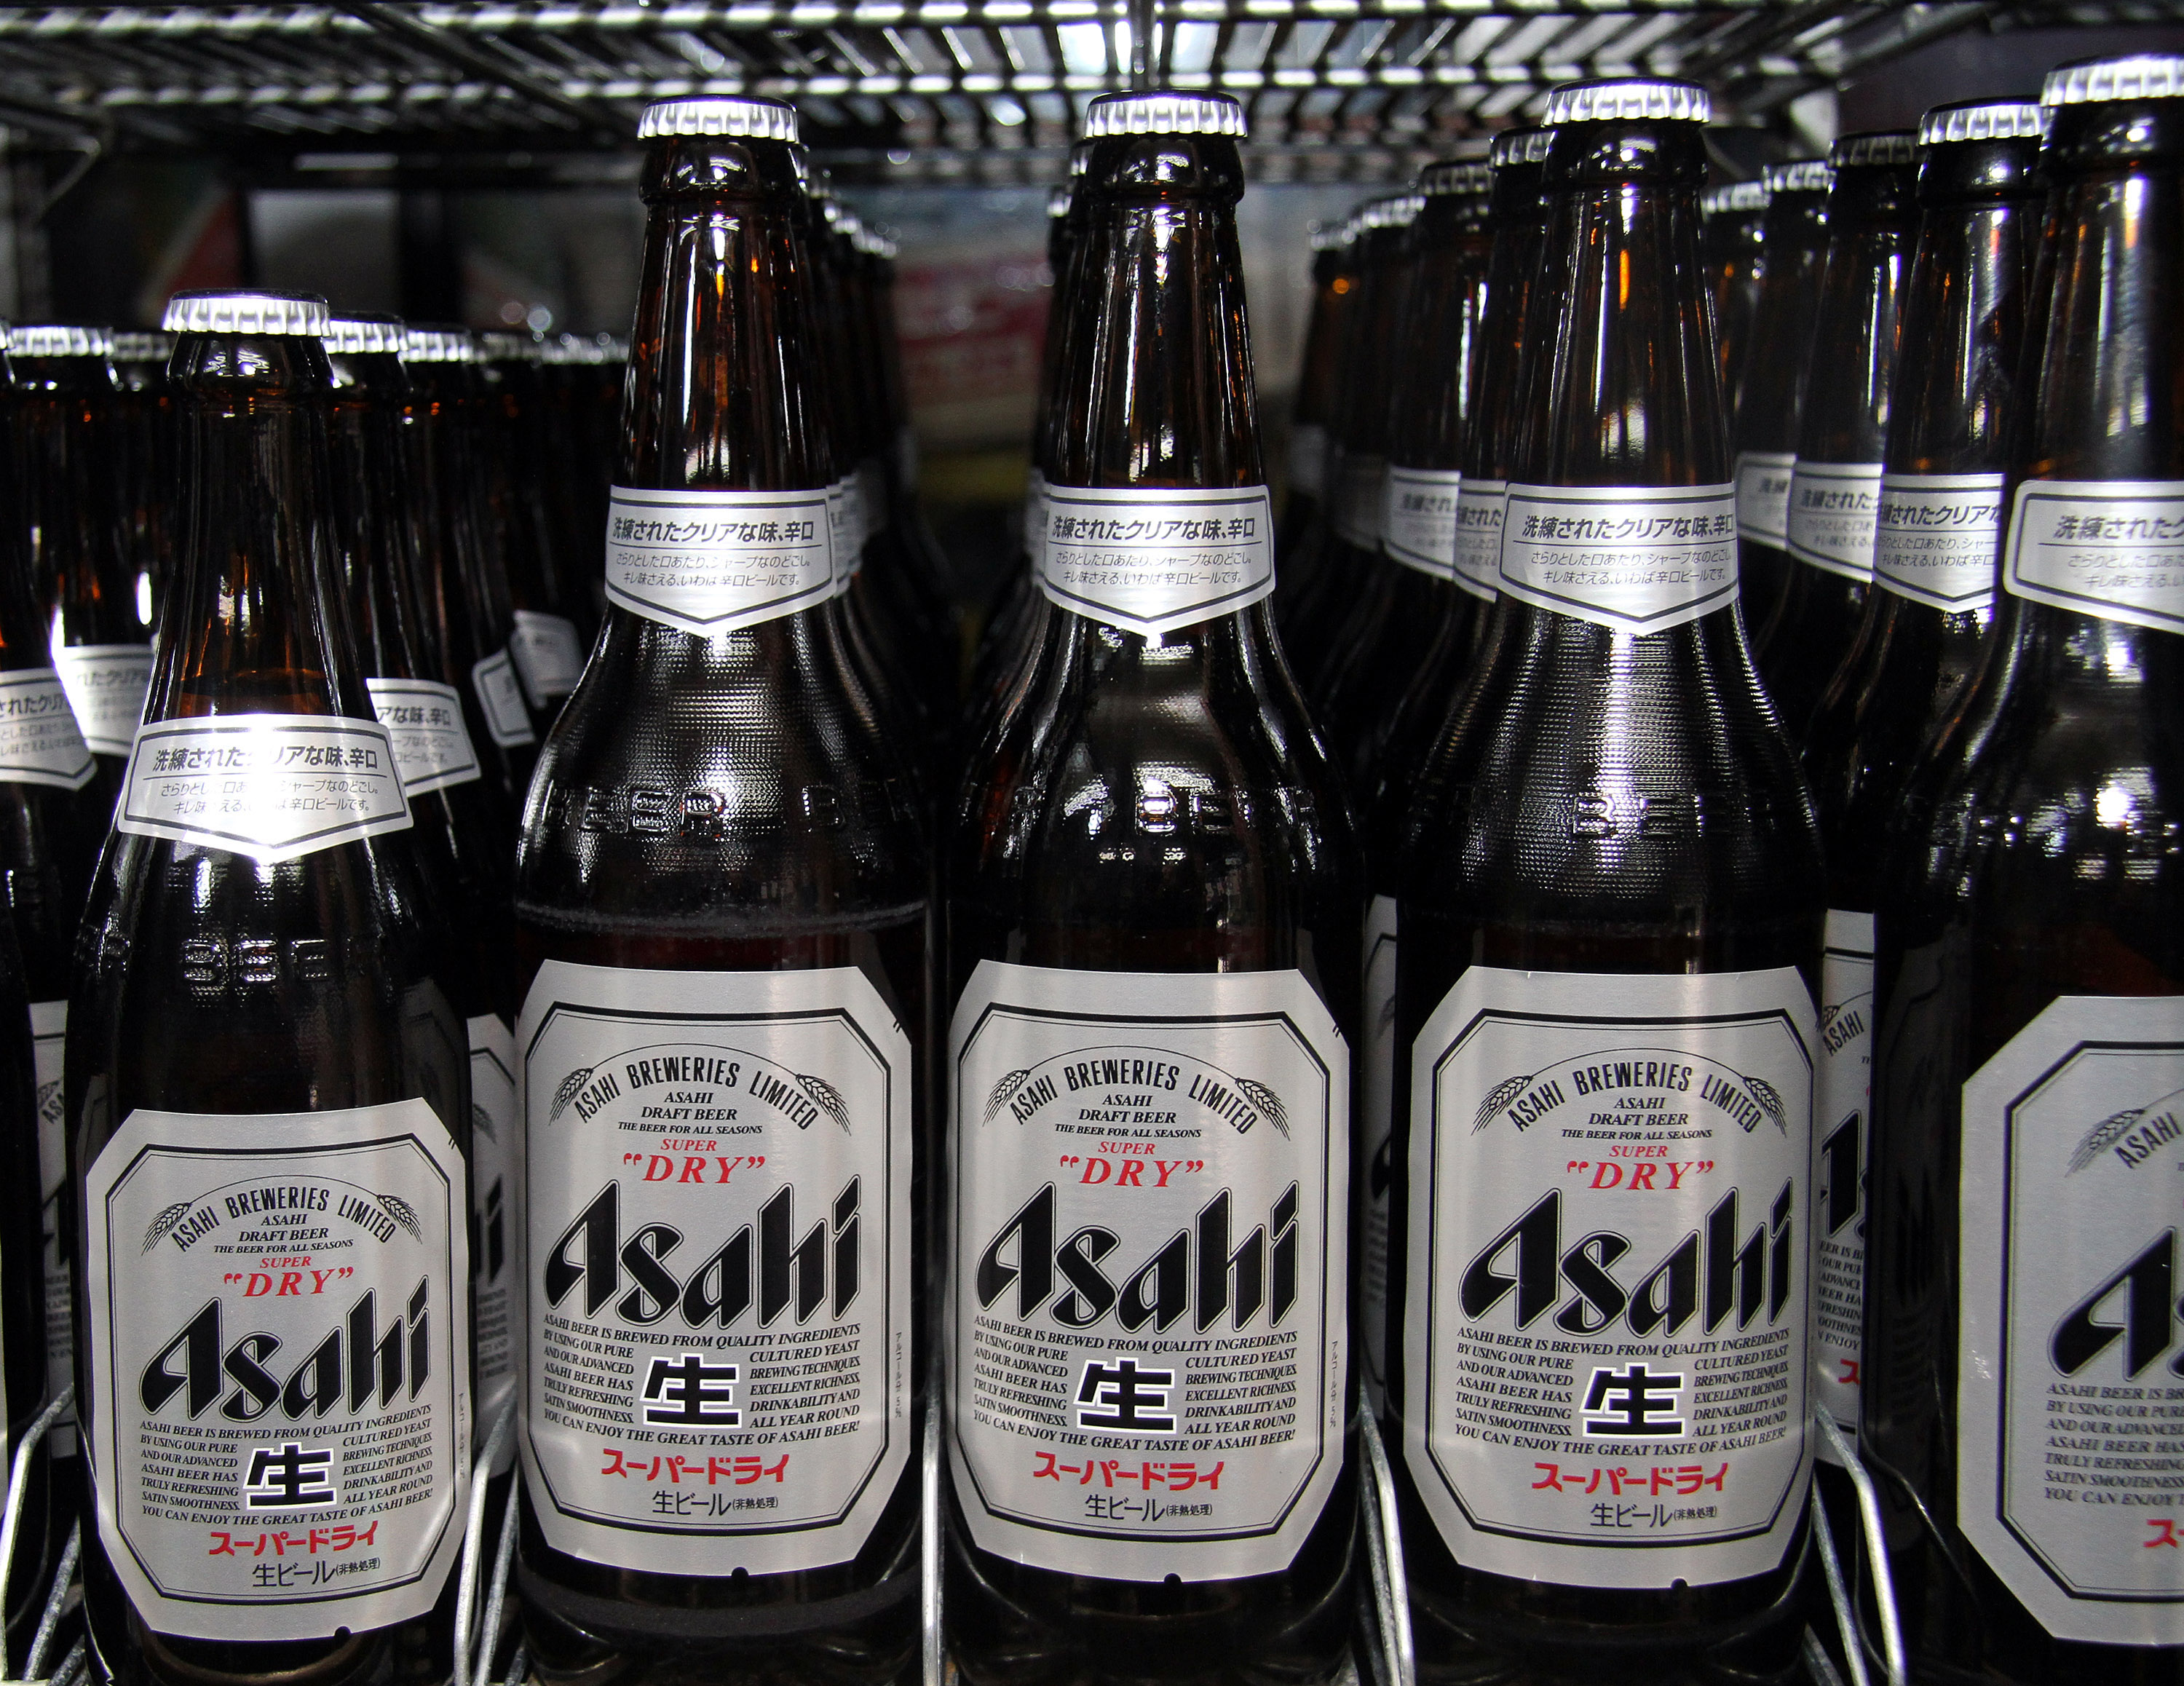 Bottles of Asahi Breweries Ltd.'s Super Dry beer are display